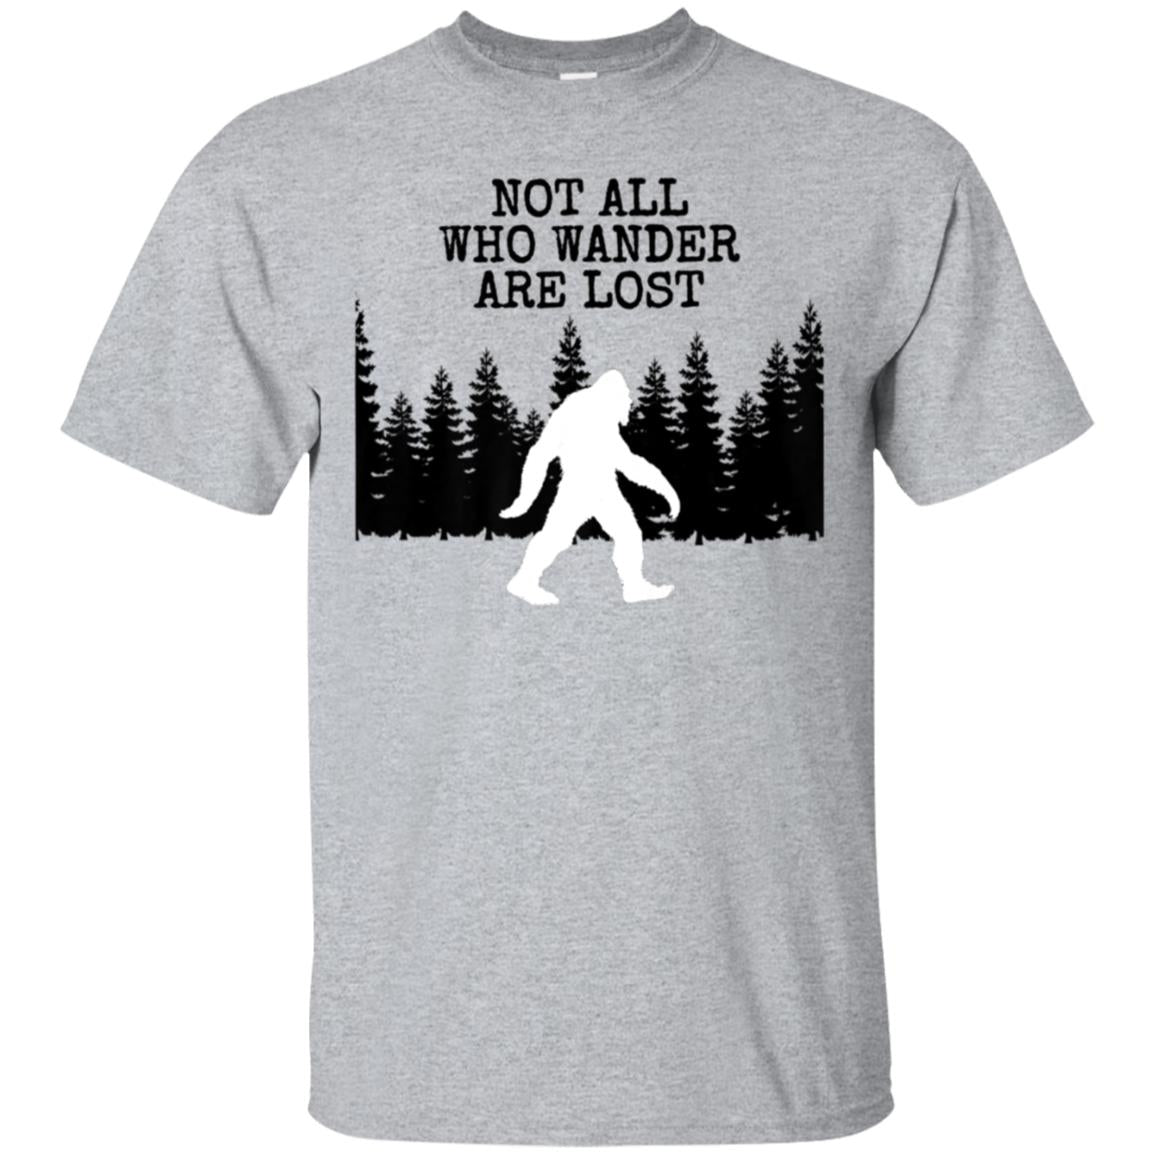 Bigfoot T-shirt not all who wander are lost. Hunting Hiking 99promocode